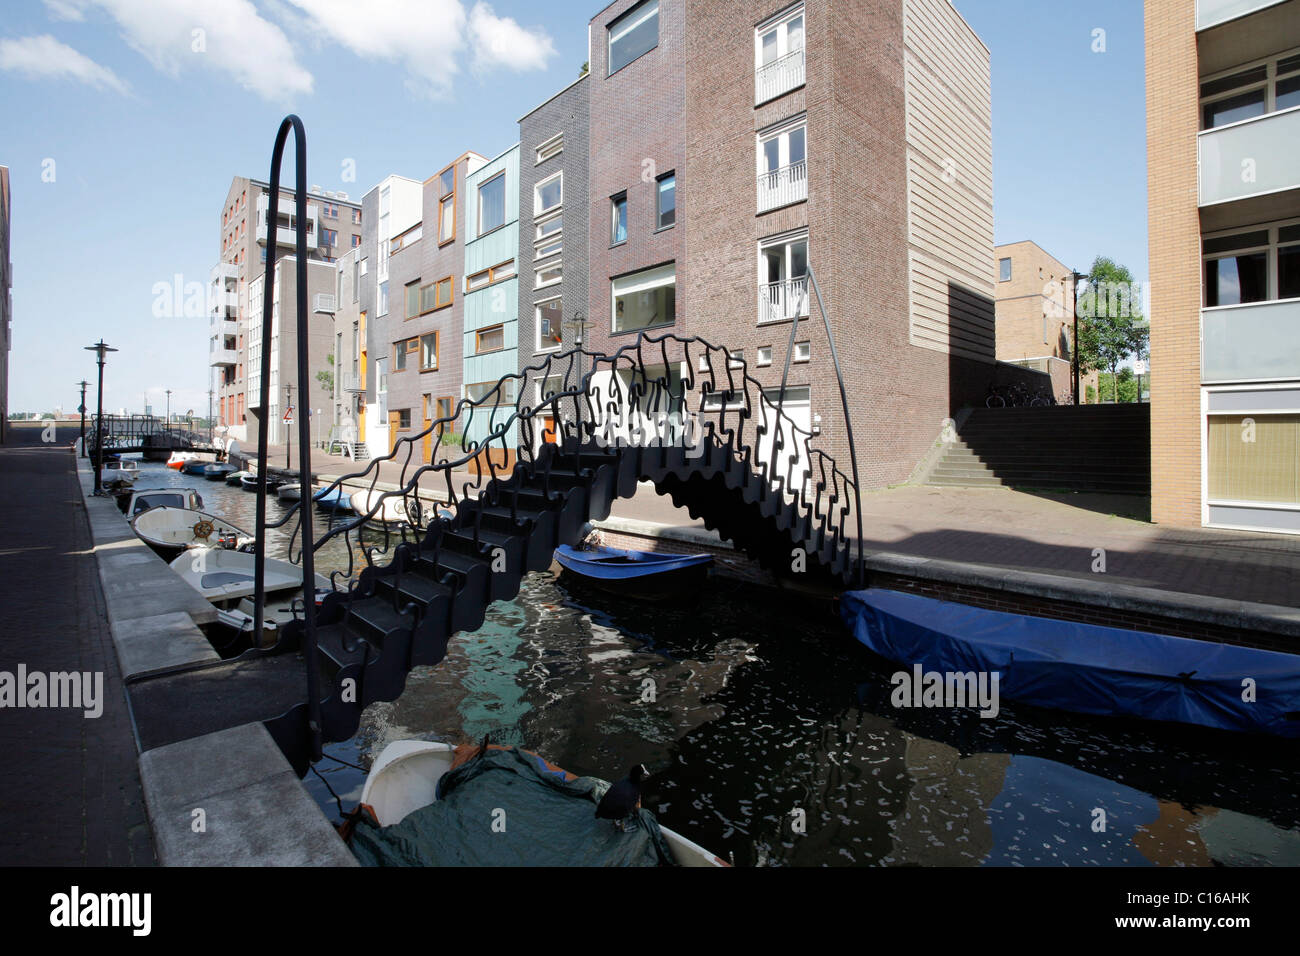 Java Eiland or Island, located in Amsterdam's harbour, covered with contemporary Dutch architecture, Amsterdam, - Stock Image